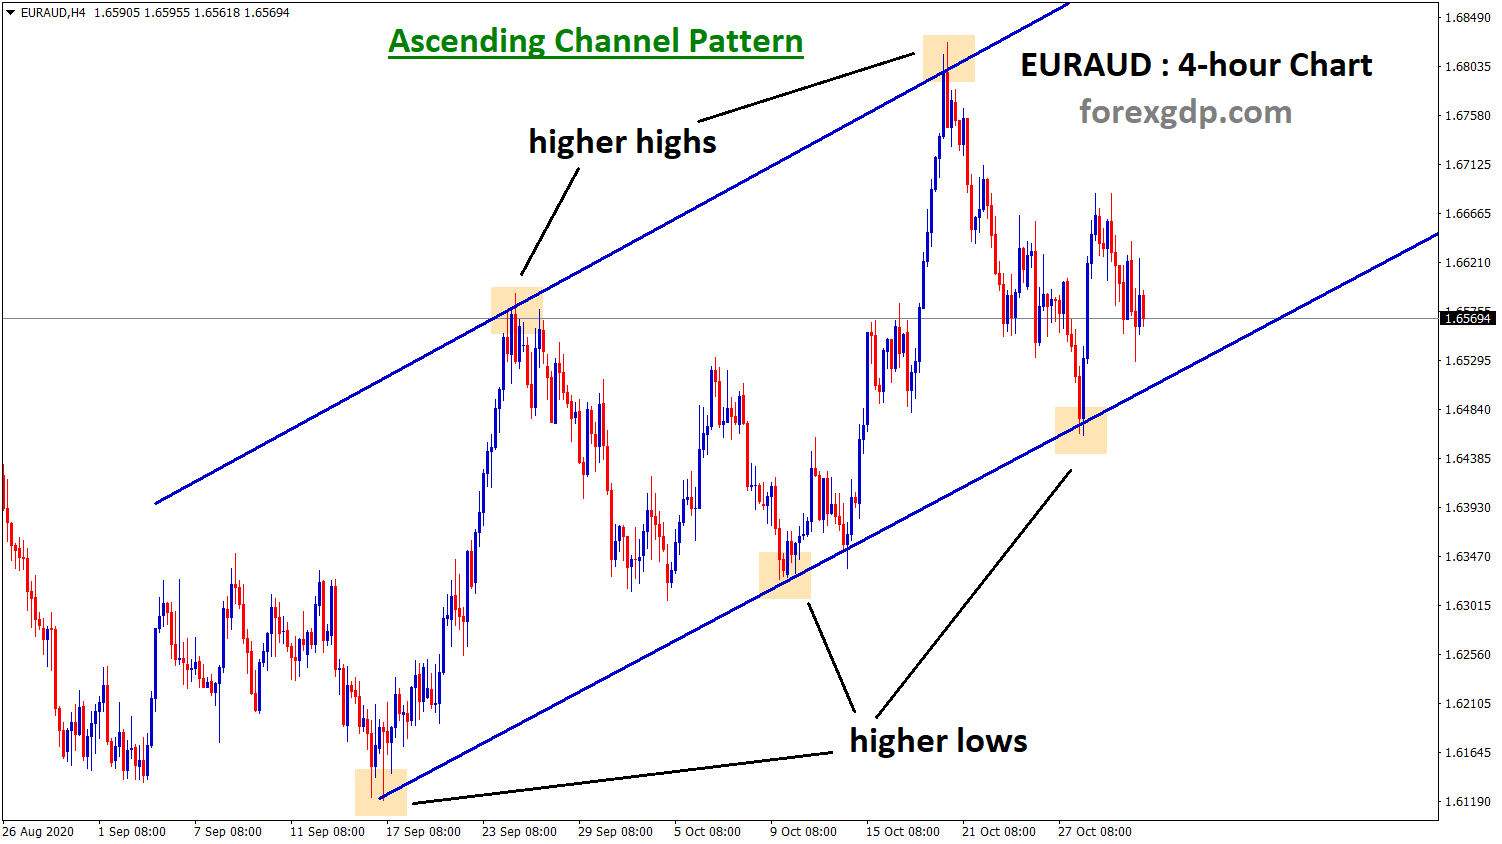 EURAUD has formed an ascending channel pattern in the h4 chart